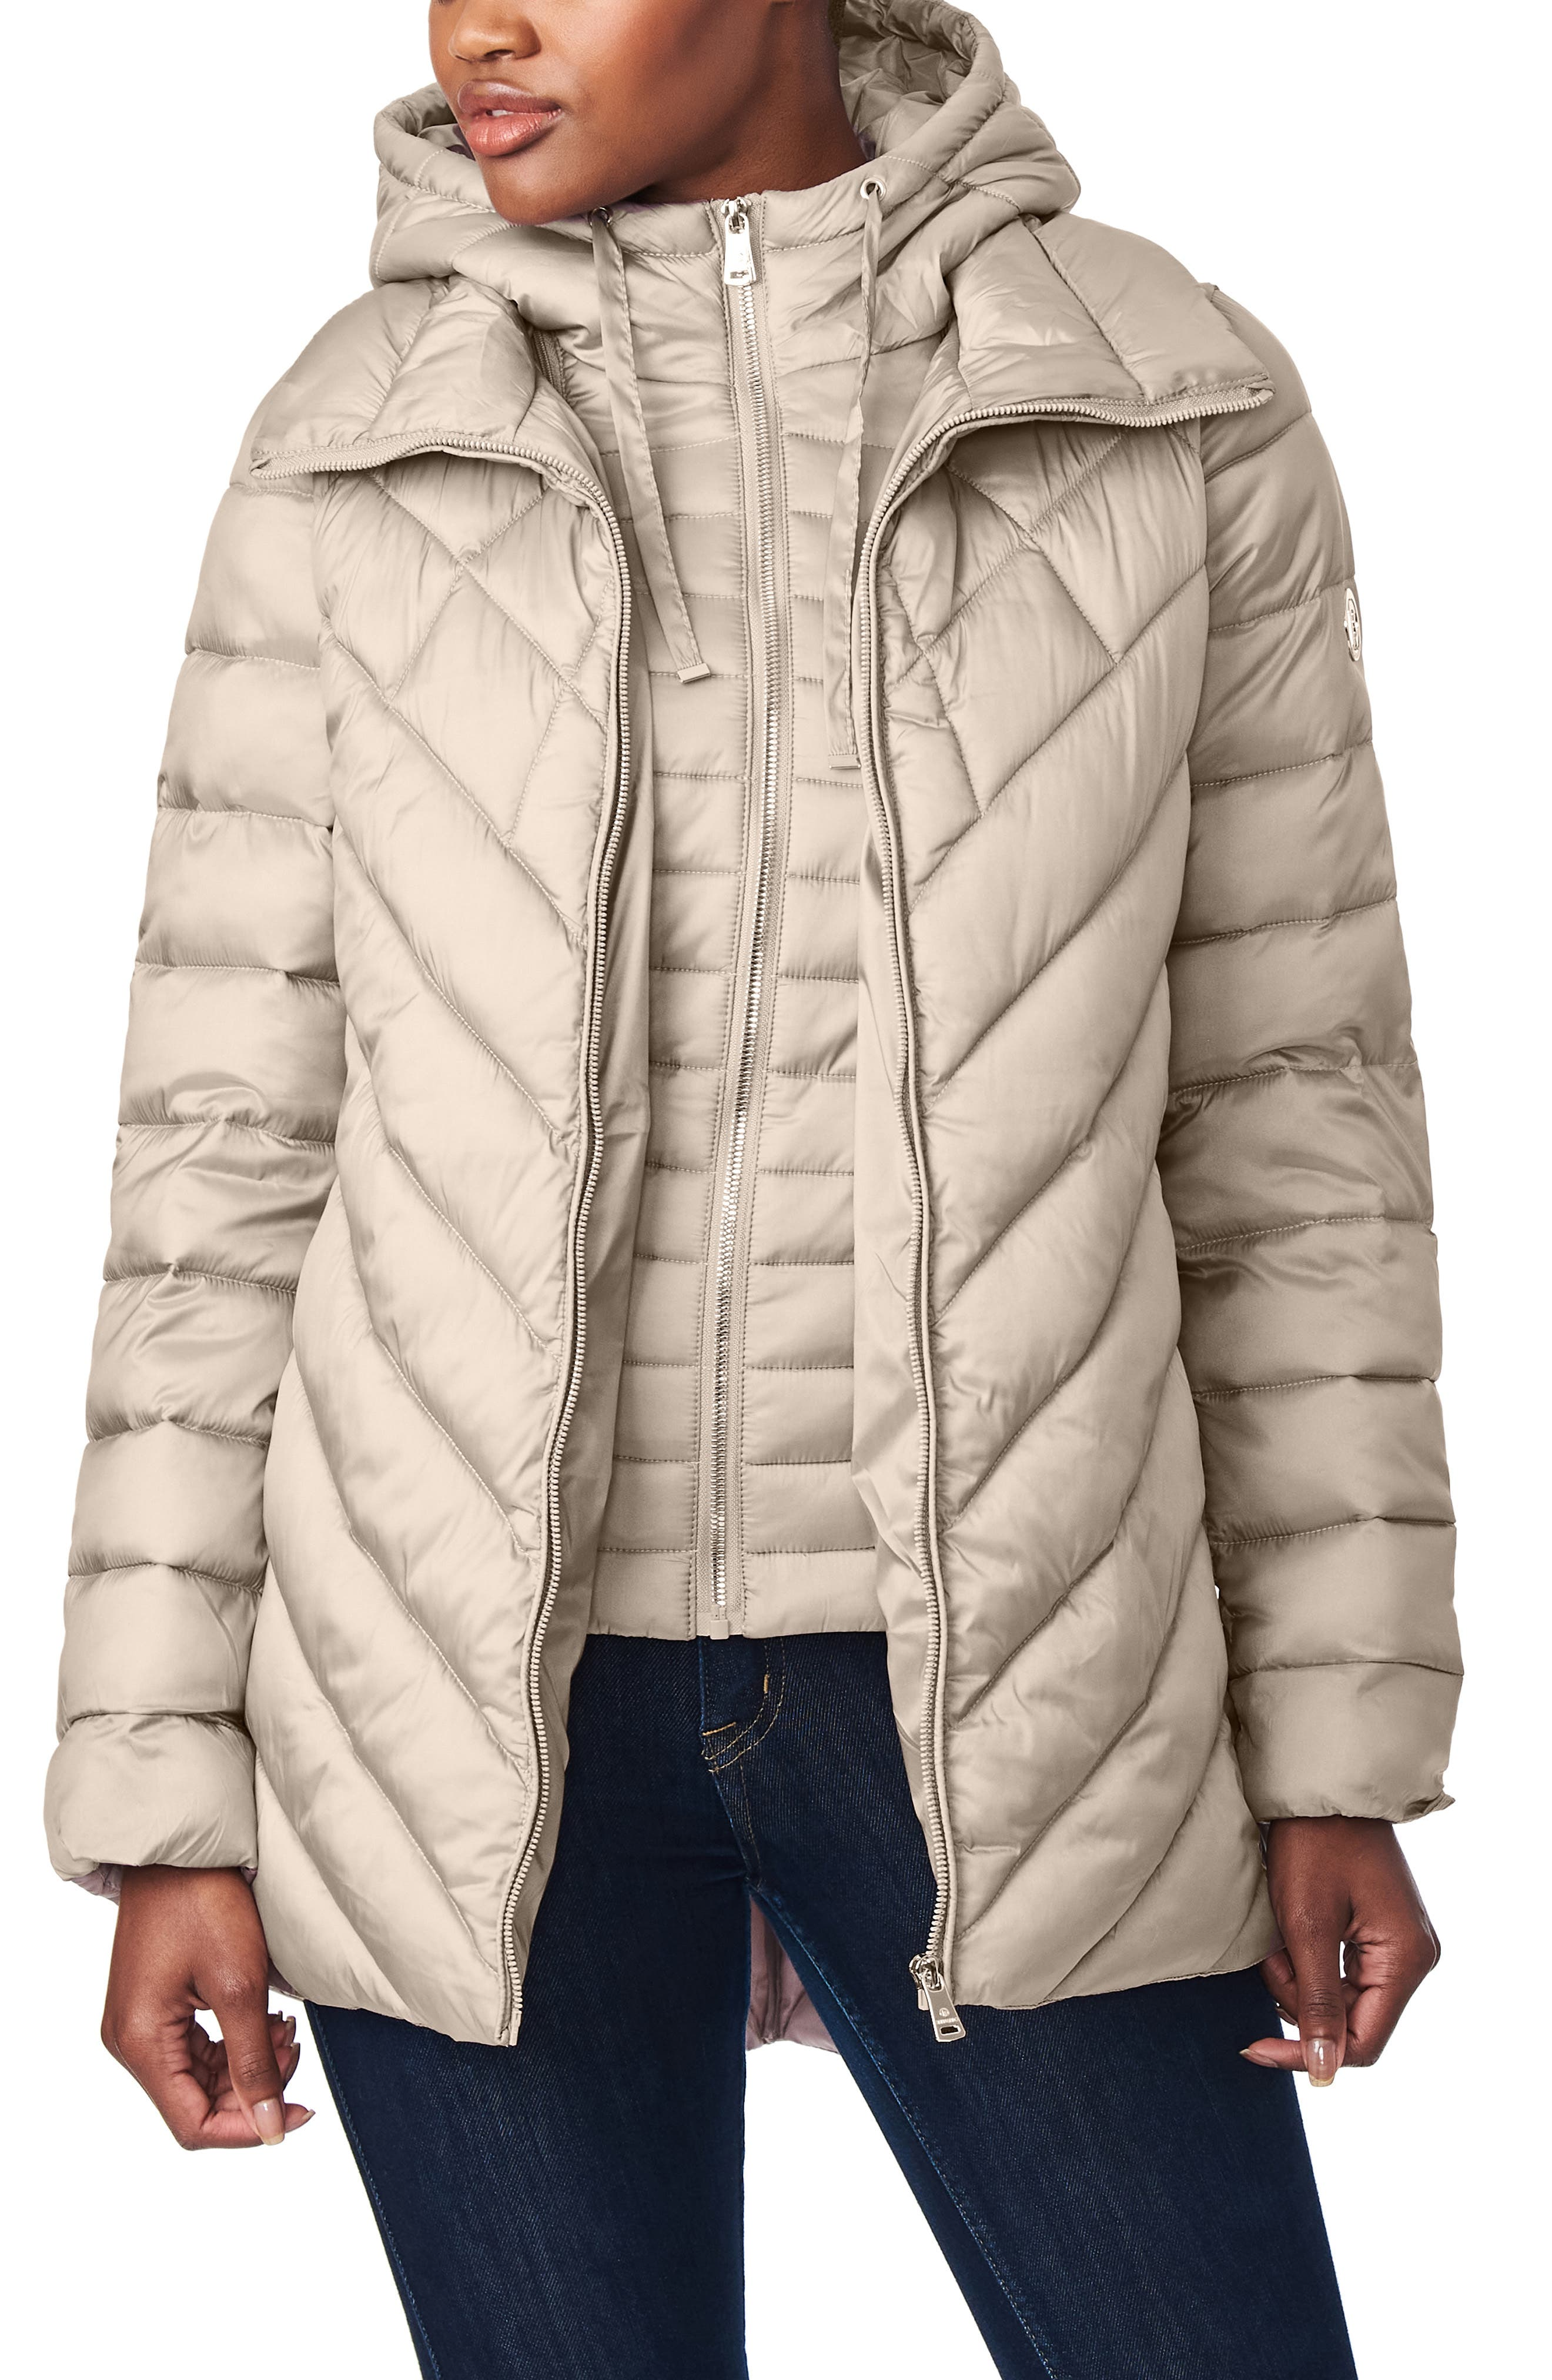 Asymmetrical Channel Quilted Jacket With Hooded Bib Inset